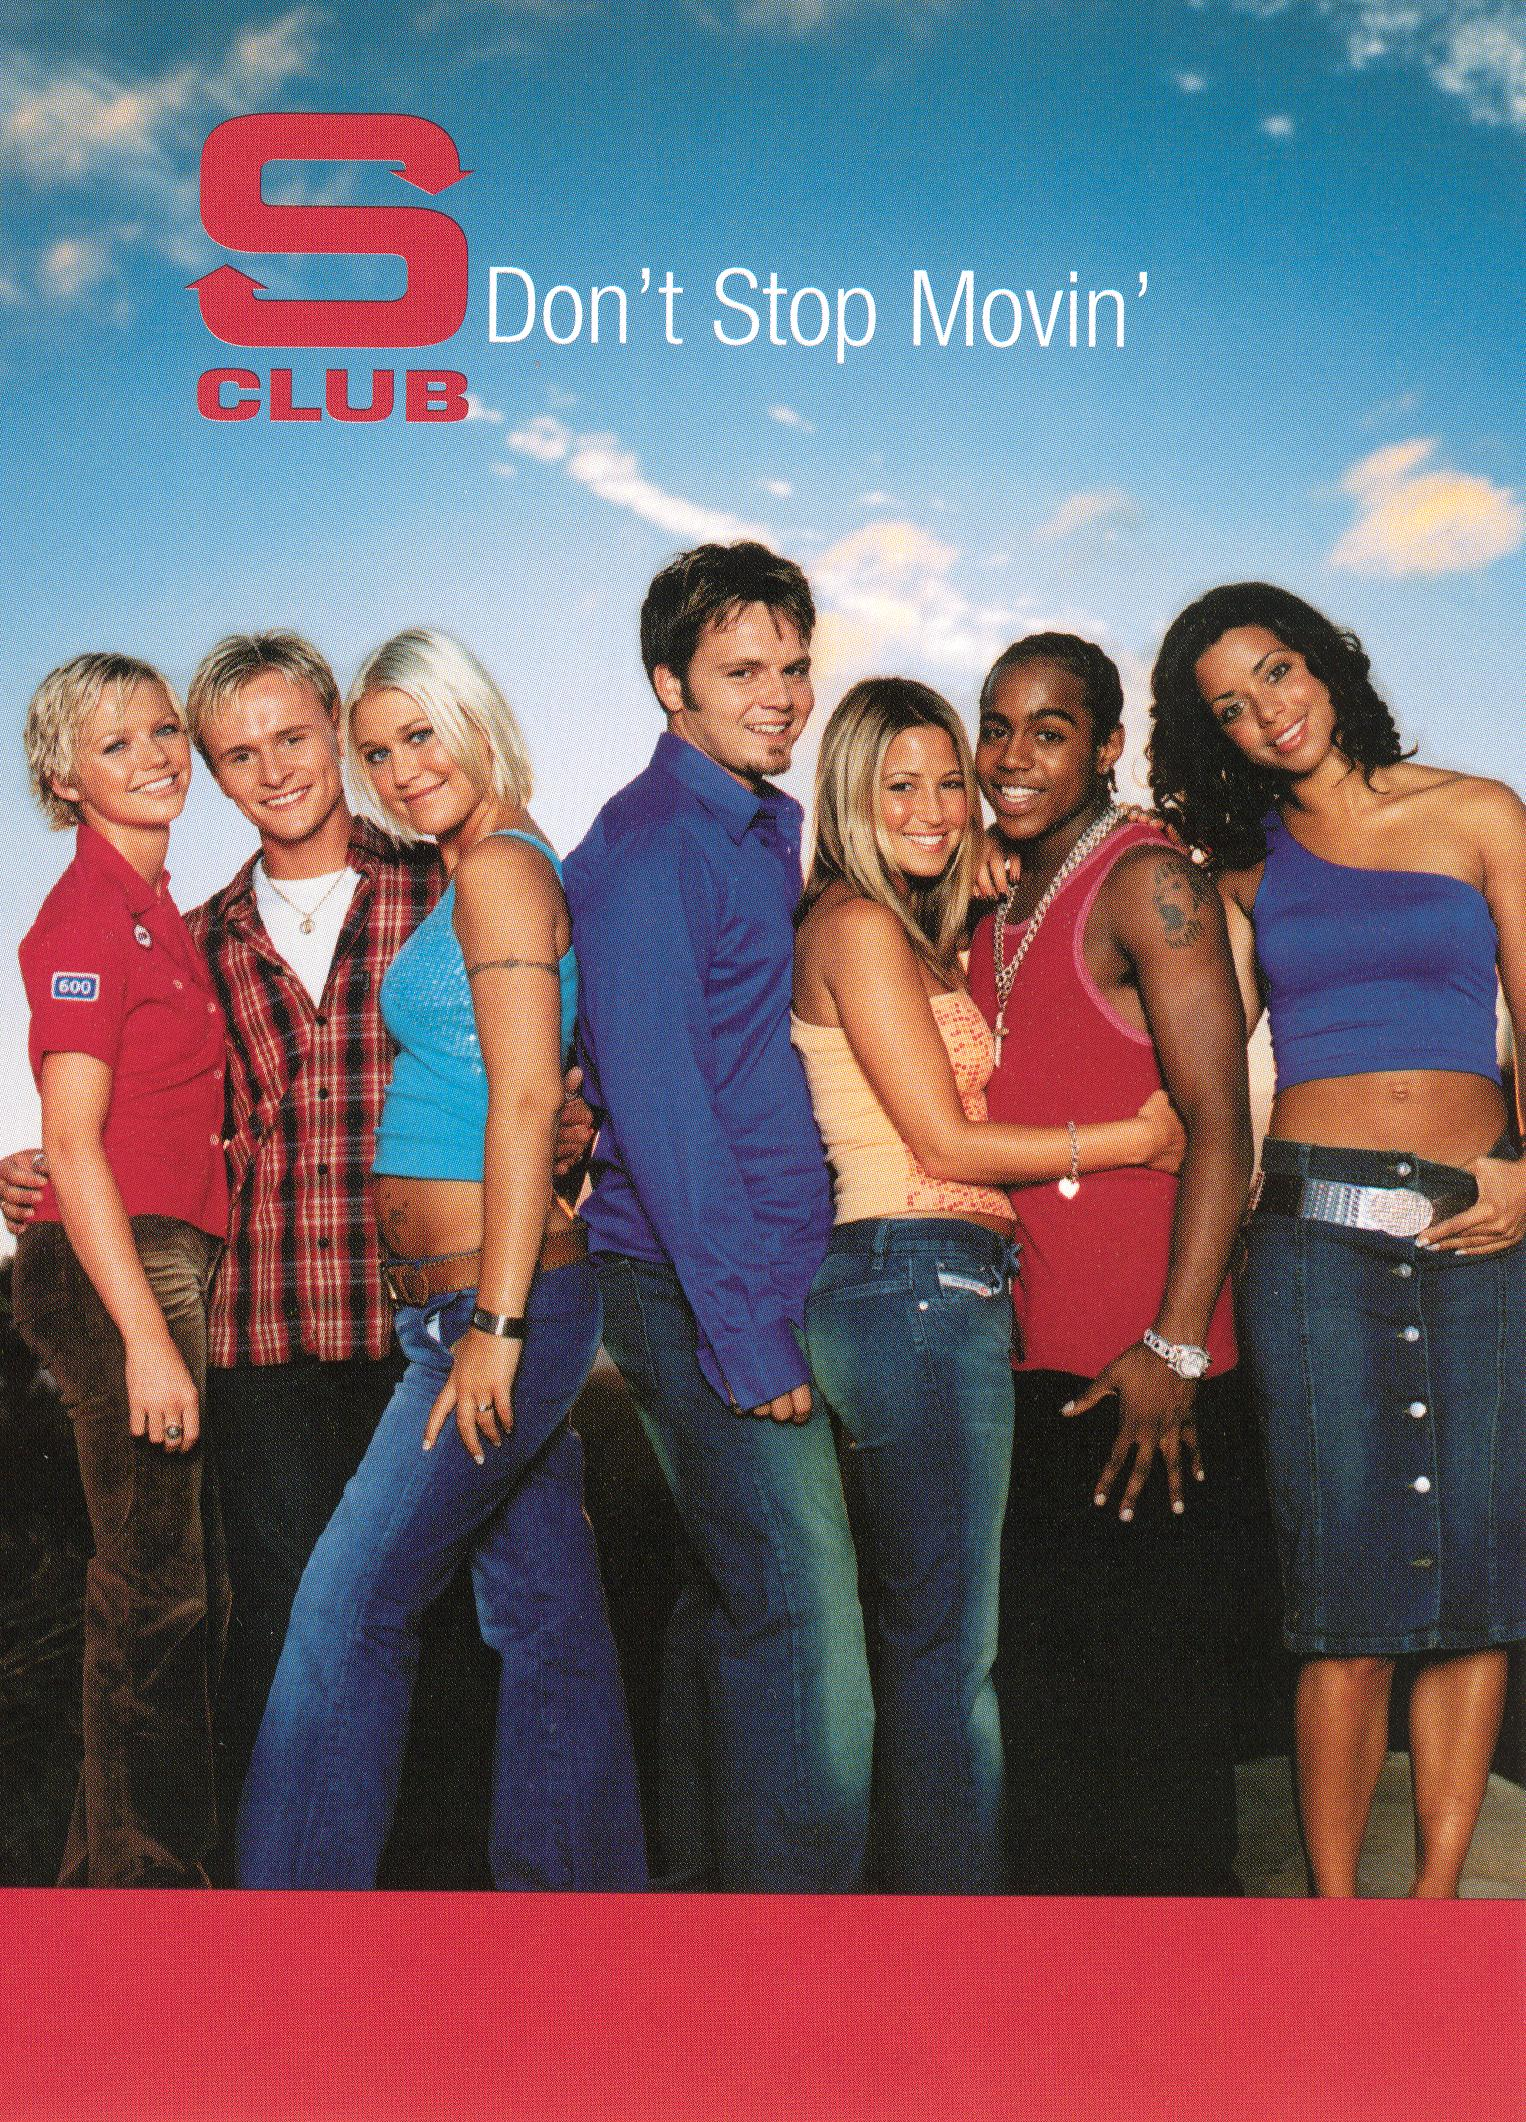 S Club: Don't Stop Movin' [DVD Single]